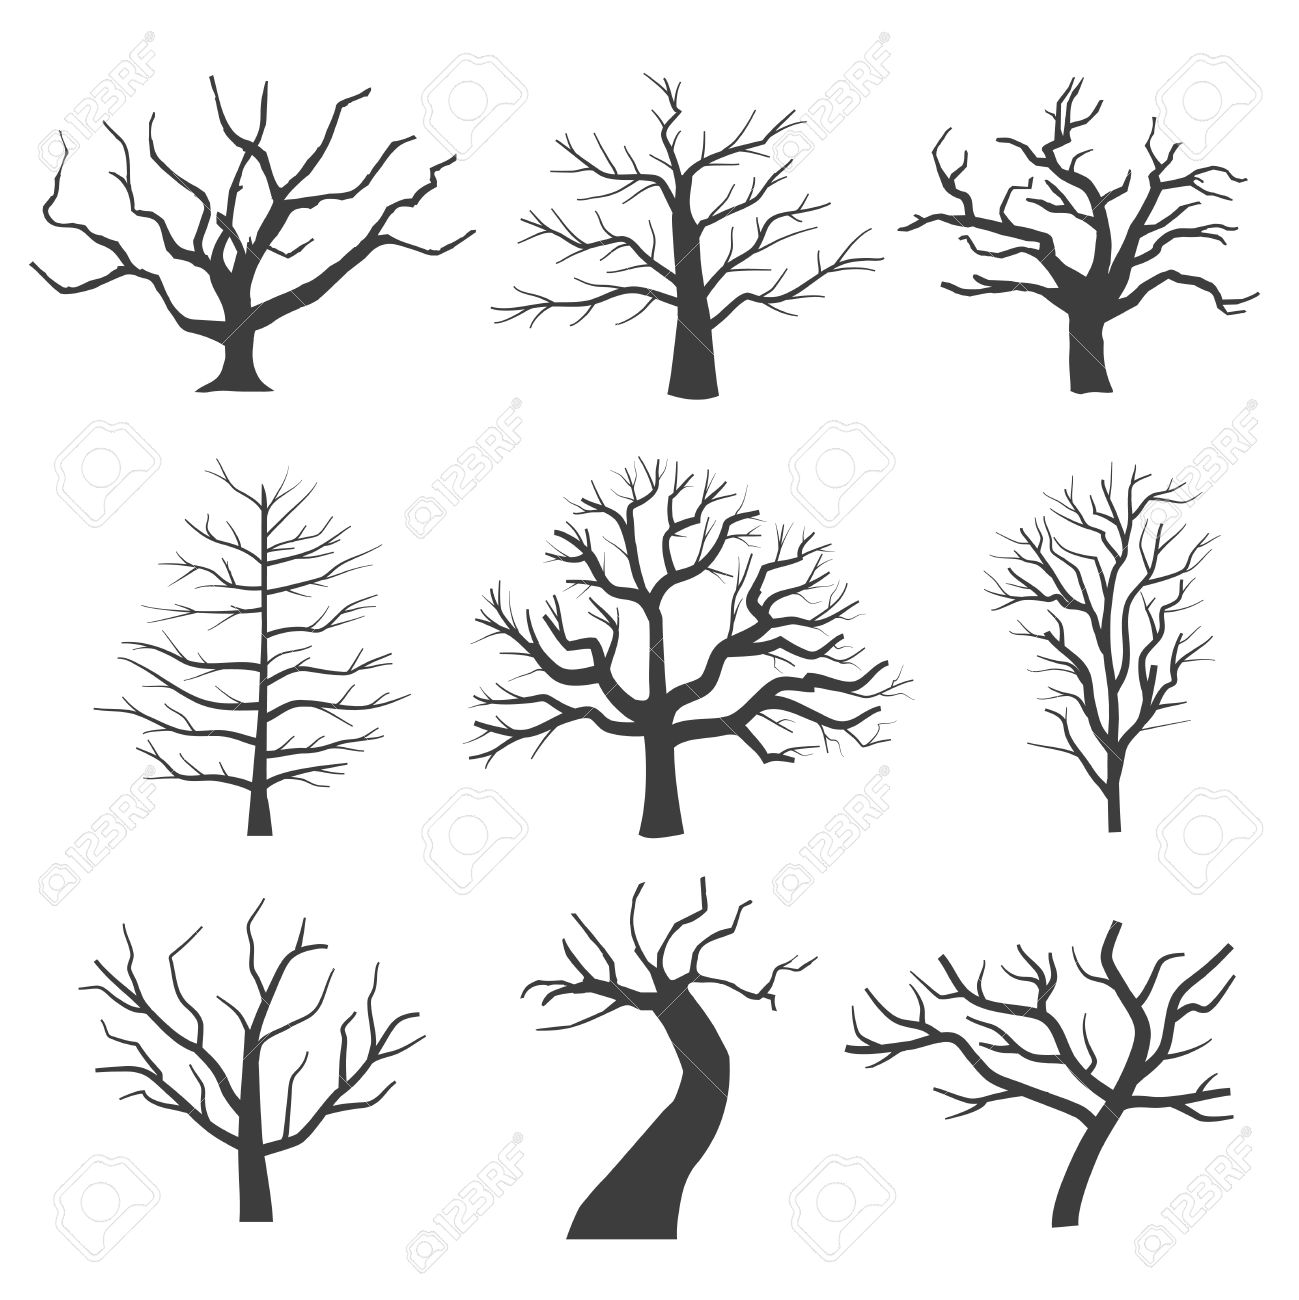 1299x1300 Dead Tree Silhouettes. Dying Black Scary Trees Forest Vector